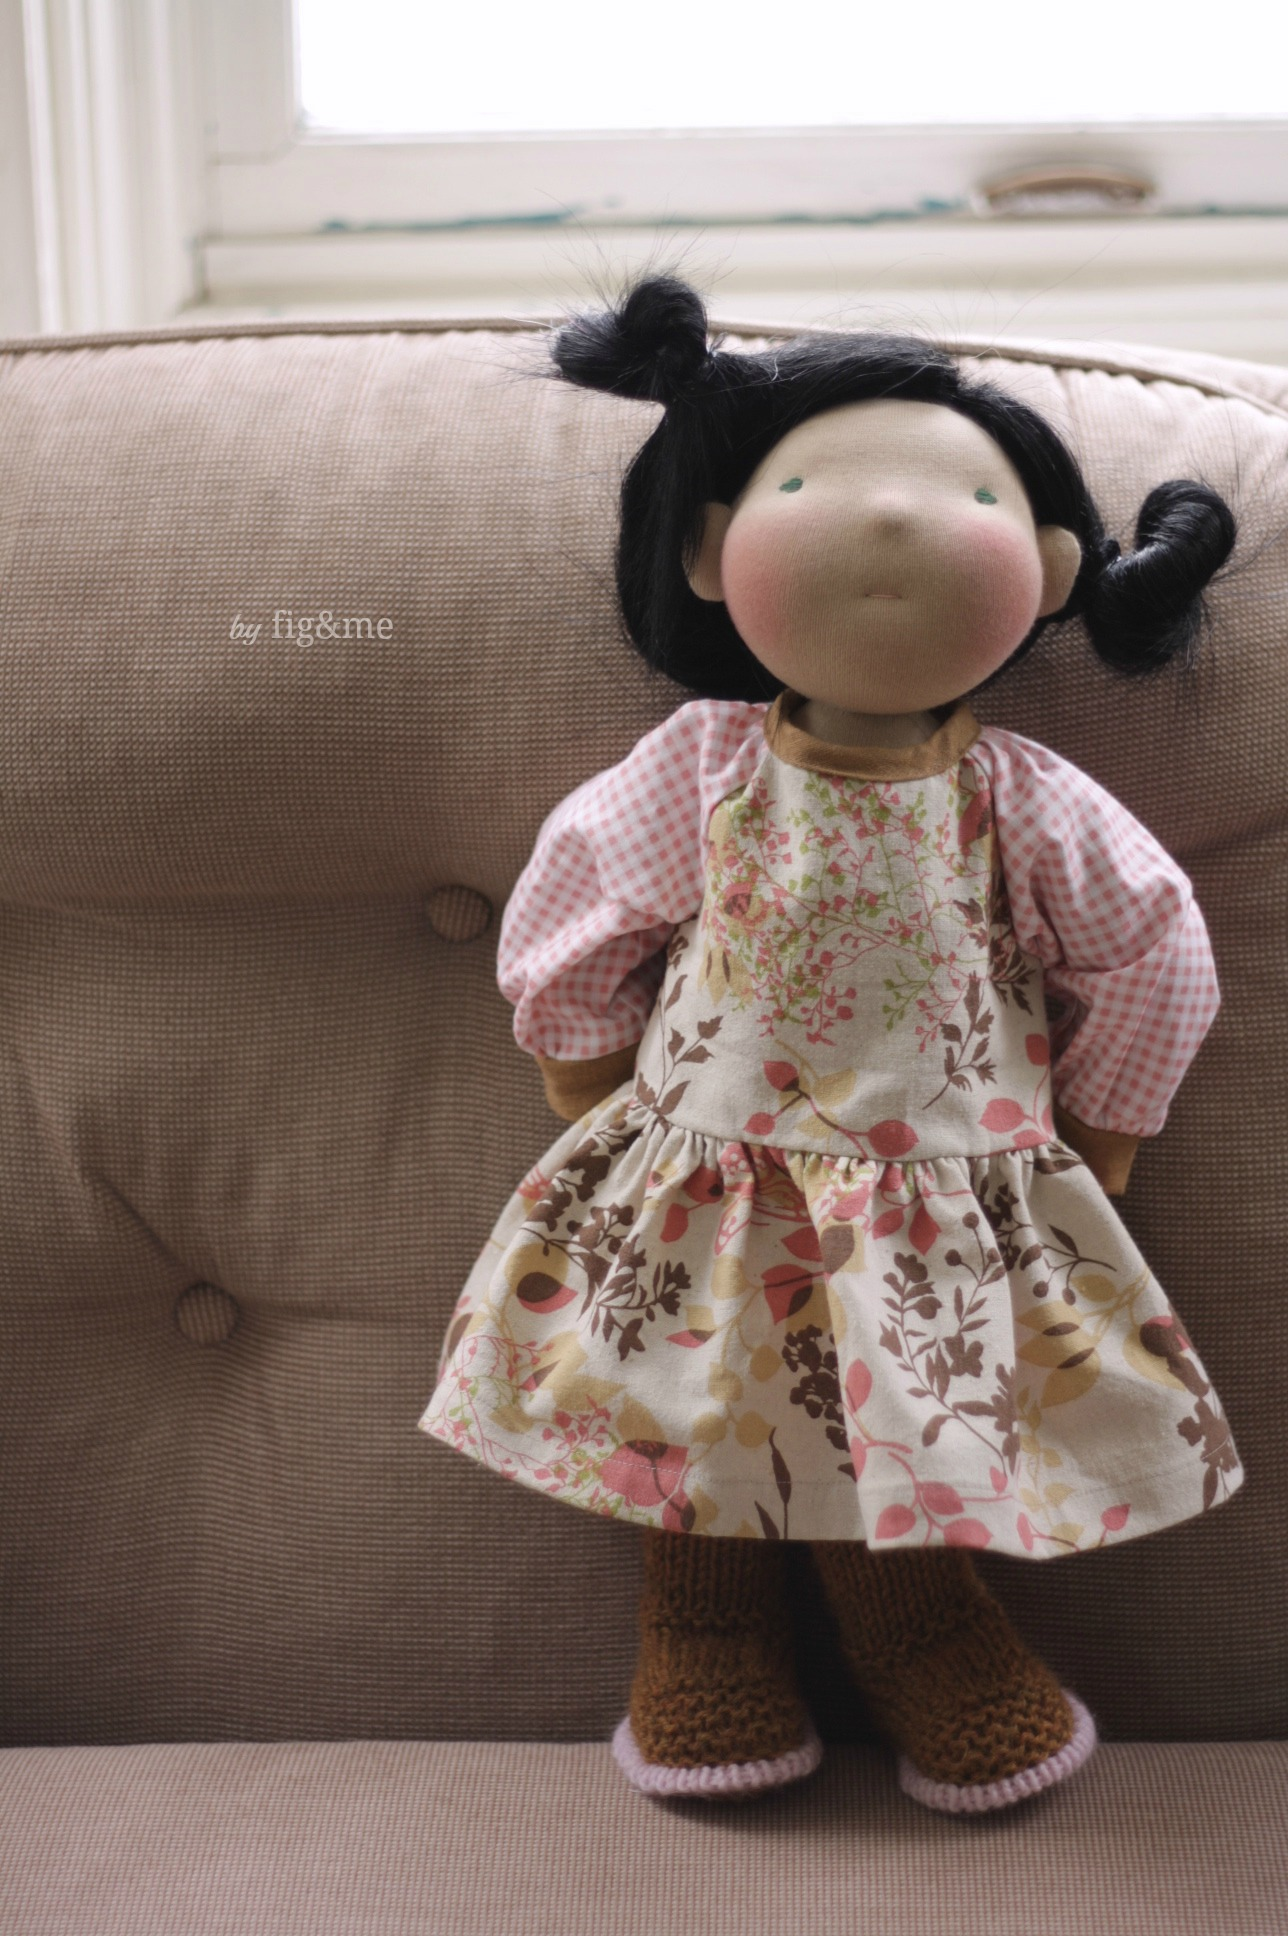 Little Lily, by Fig&me